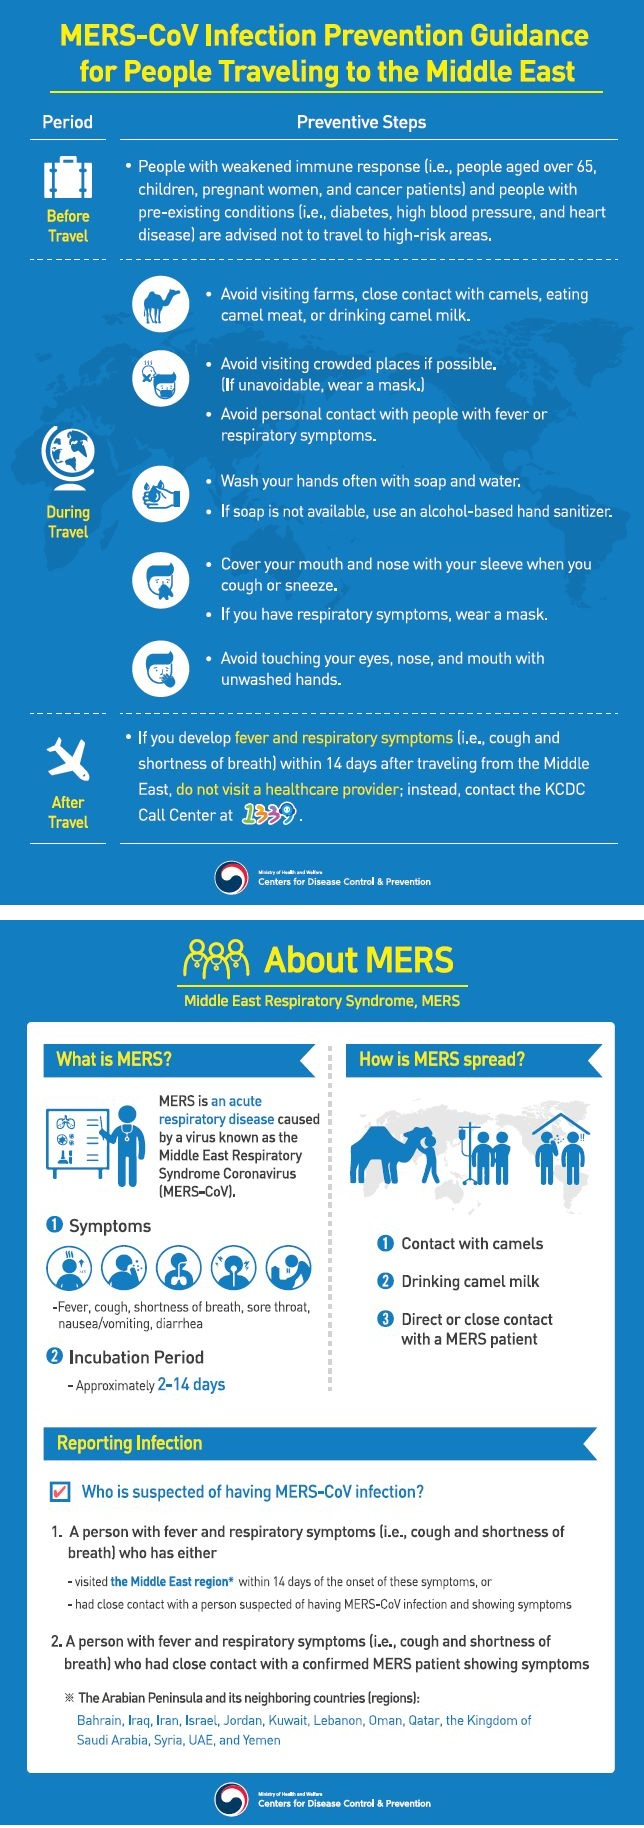 MERS-CoV Infection Prevention Guidance